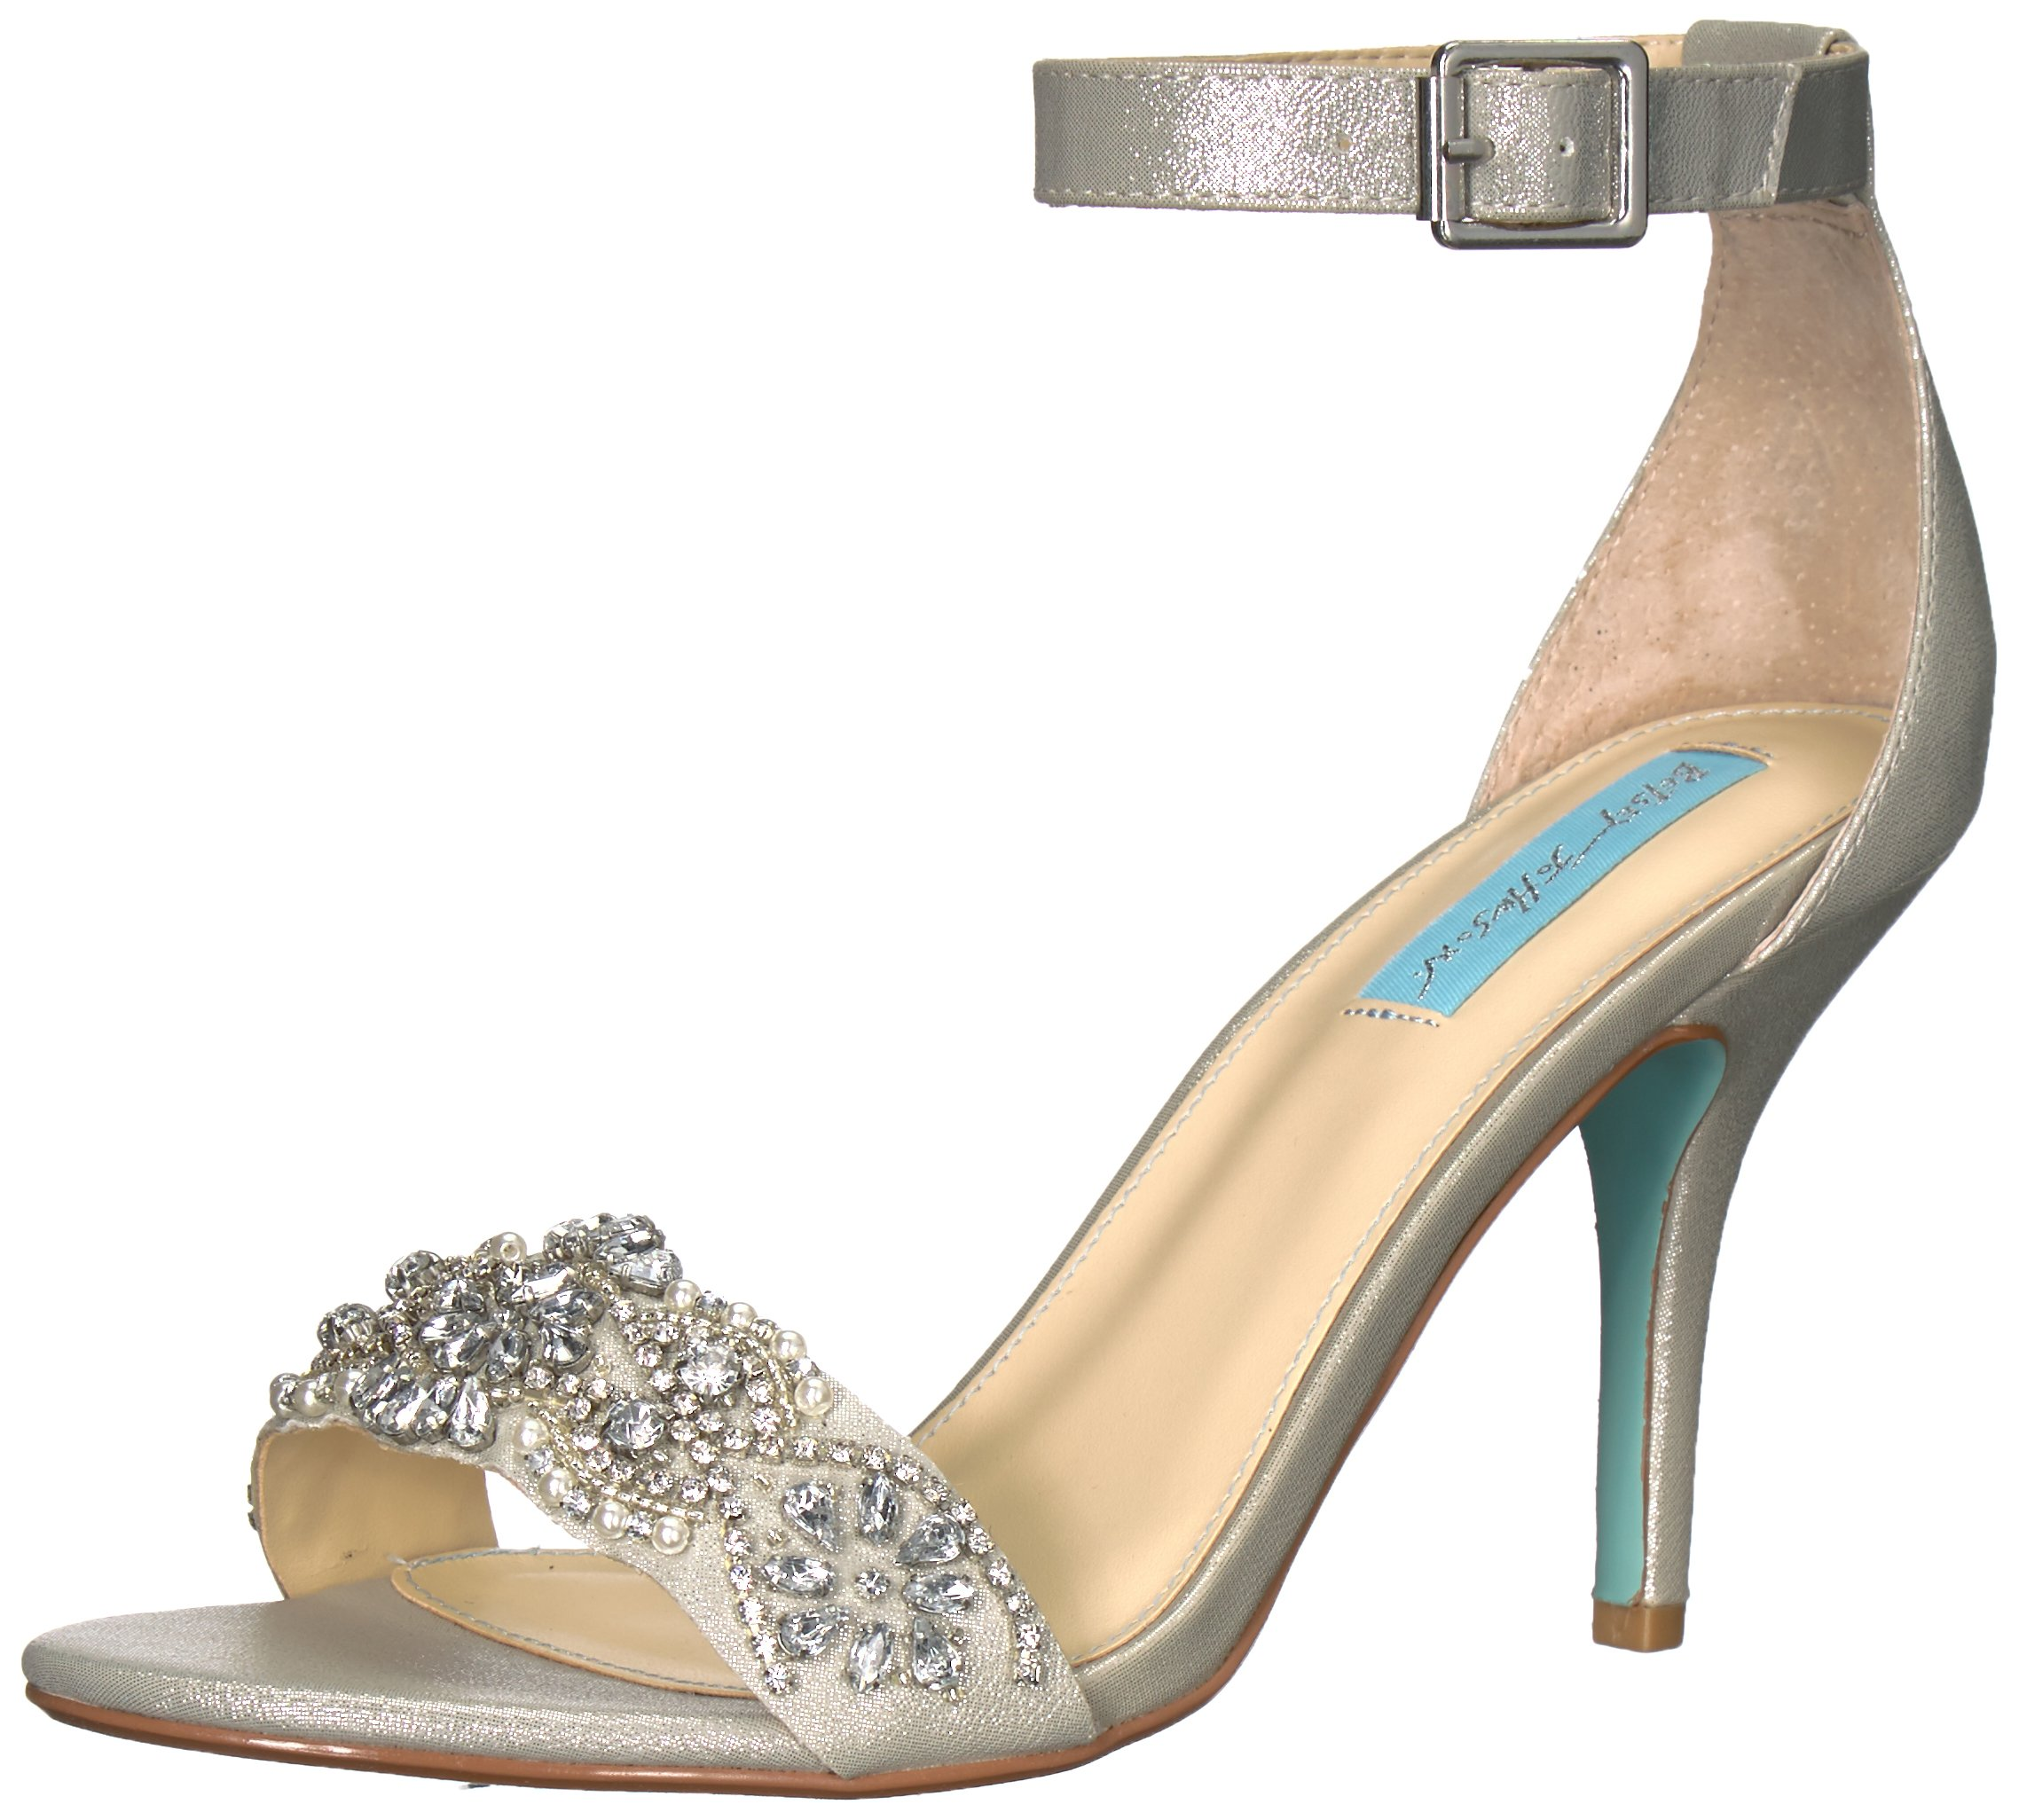 Blue by Betsey Johnson Women's SB-Gina Heeled Sandal, Silver, 8 W US